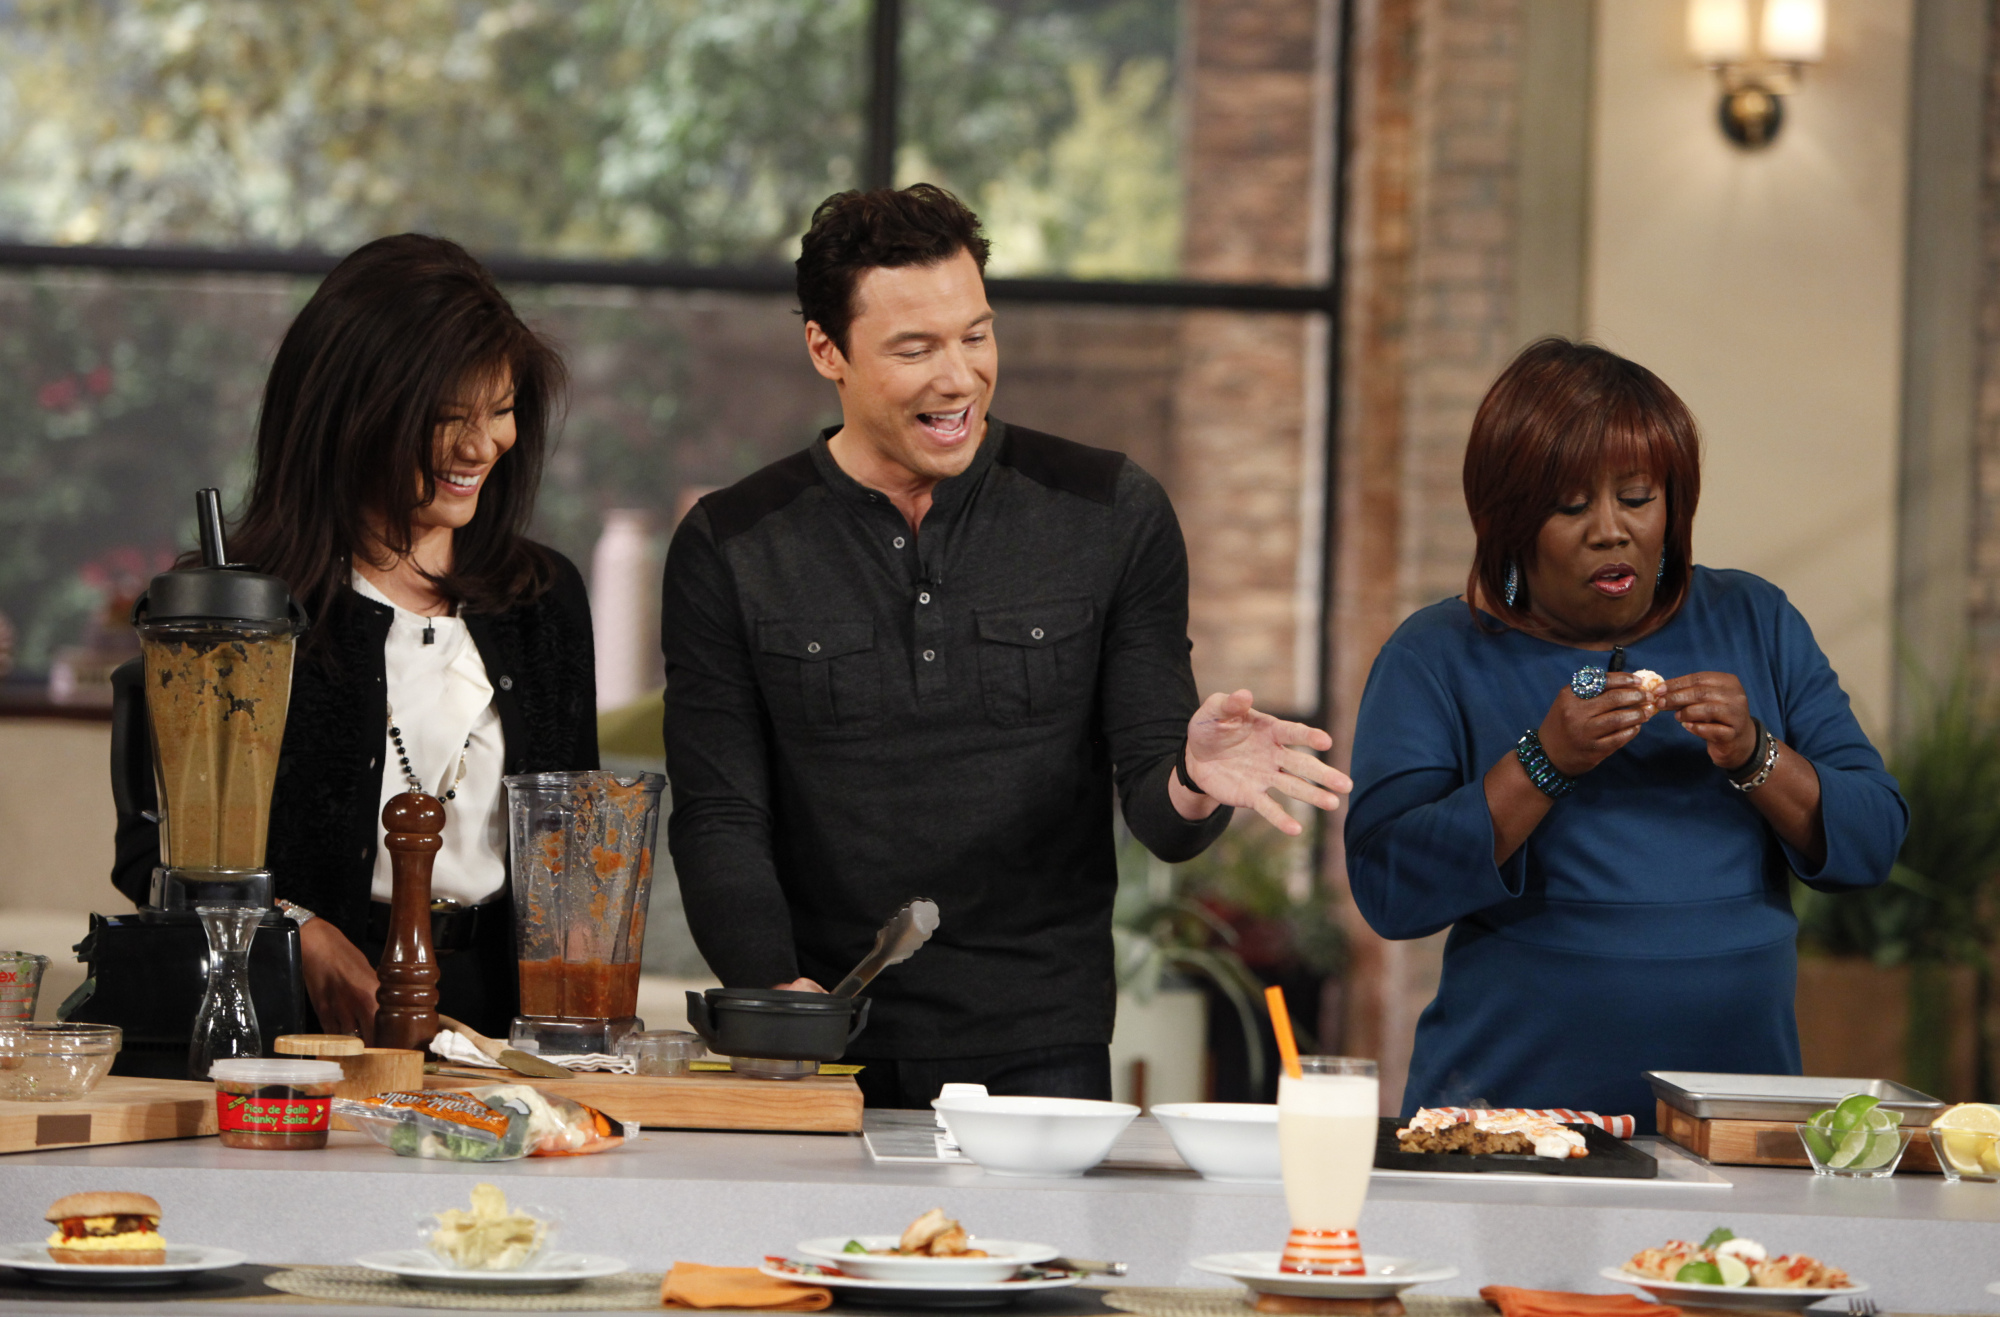 26. Rocco DiSpirito - Chef & TV Personality